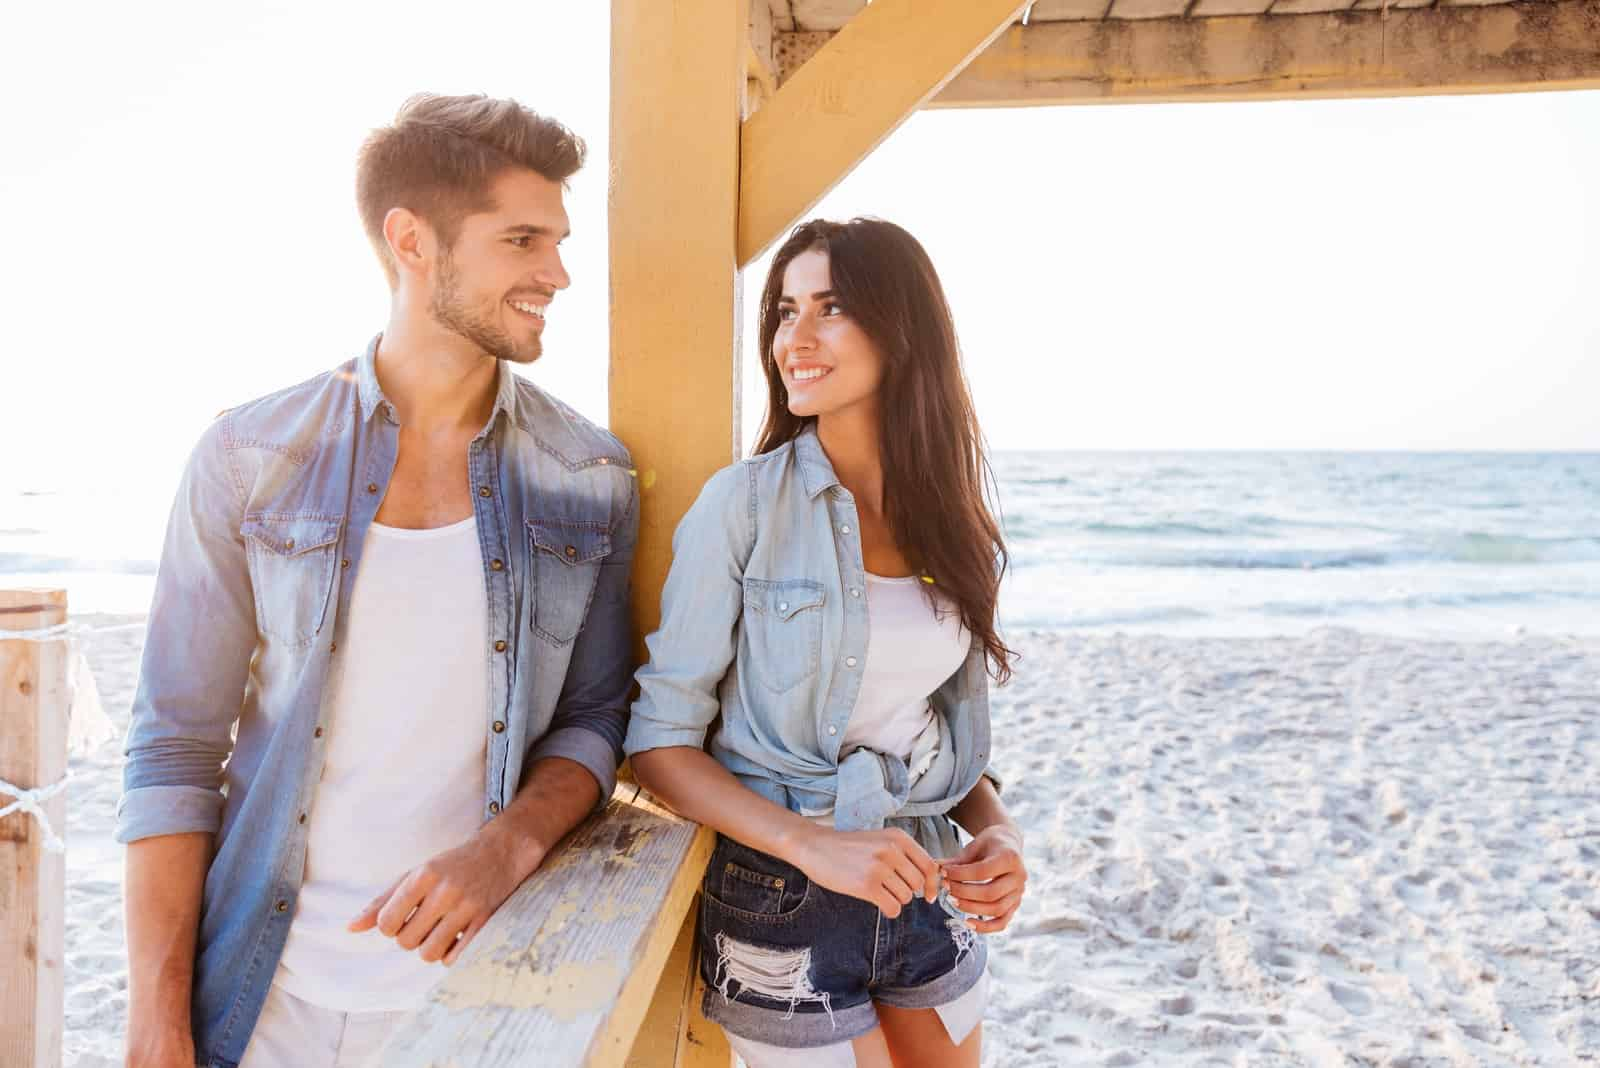 man and woman flirting while standing on the beach